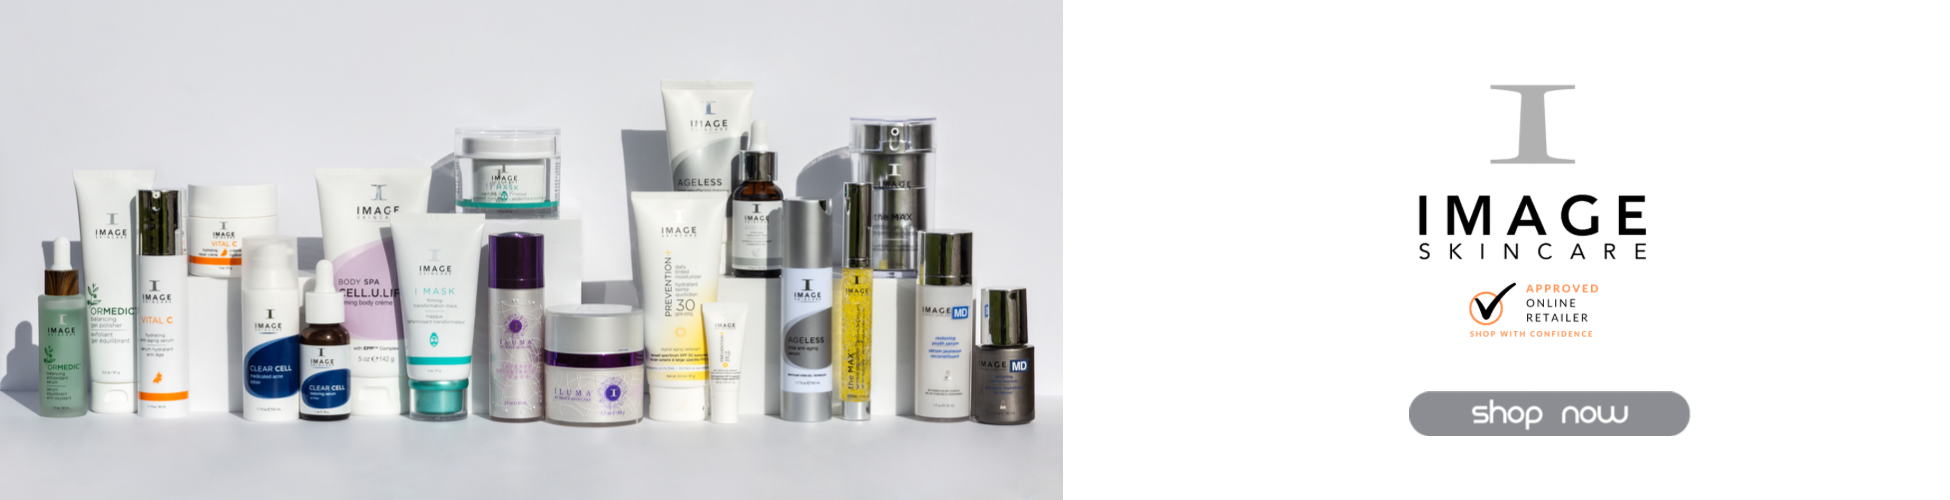 Image Skincare Products